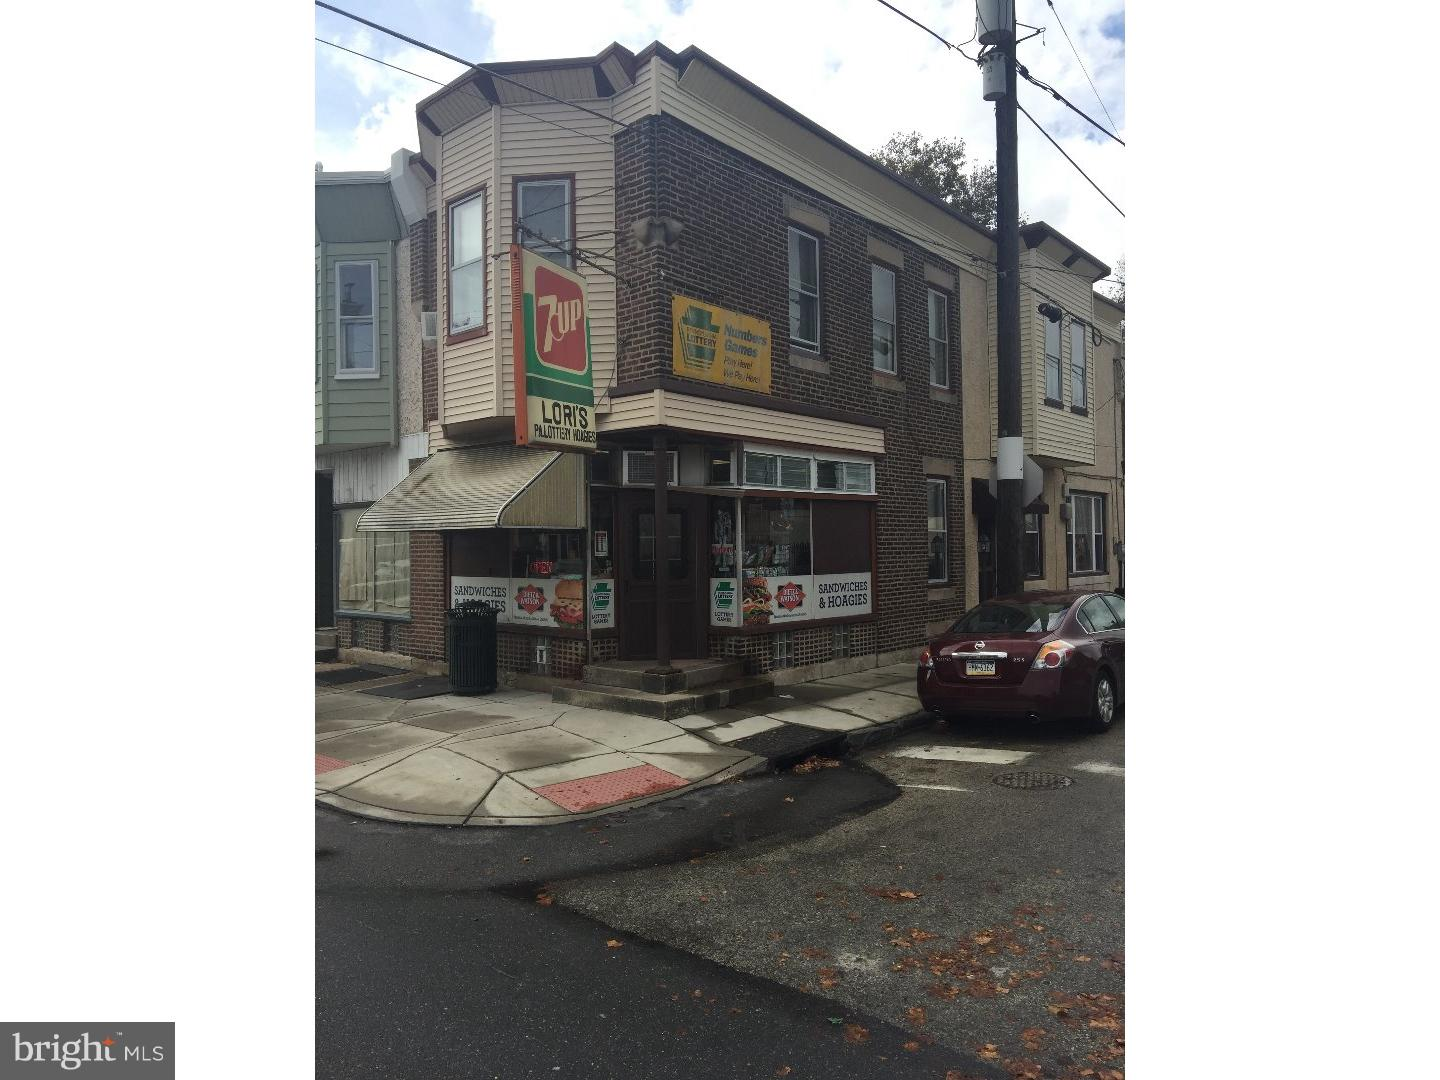 4790 RICHMOND STREET, PHILADELPHIA, PA 19137